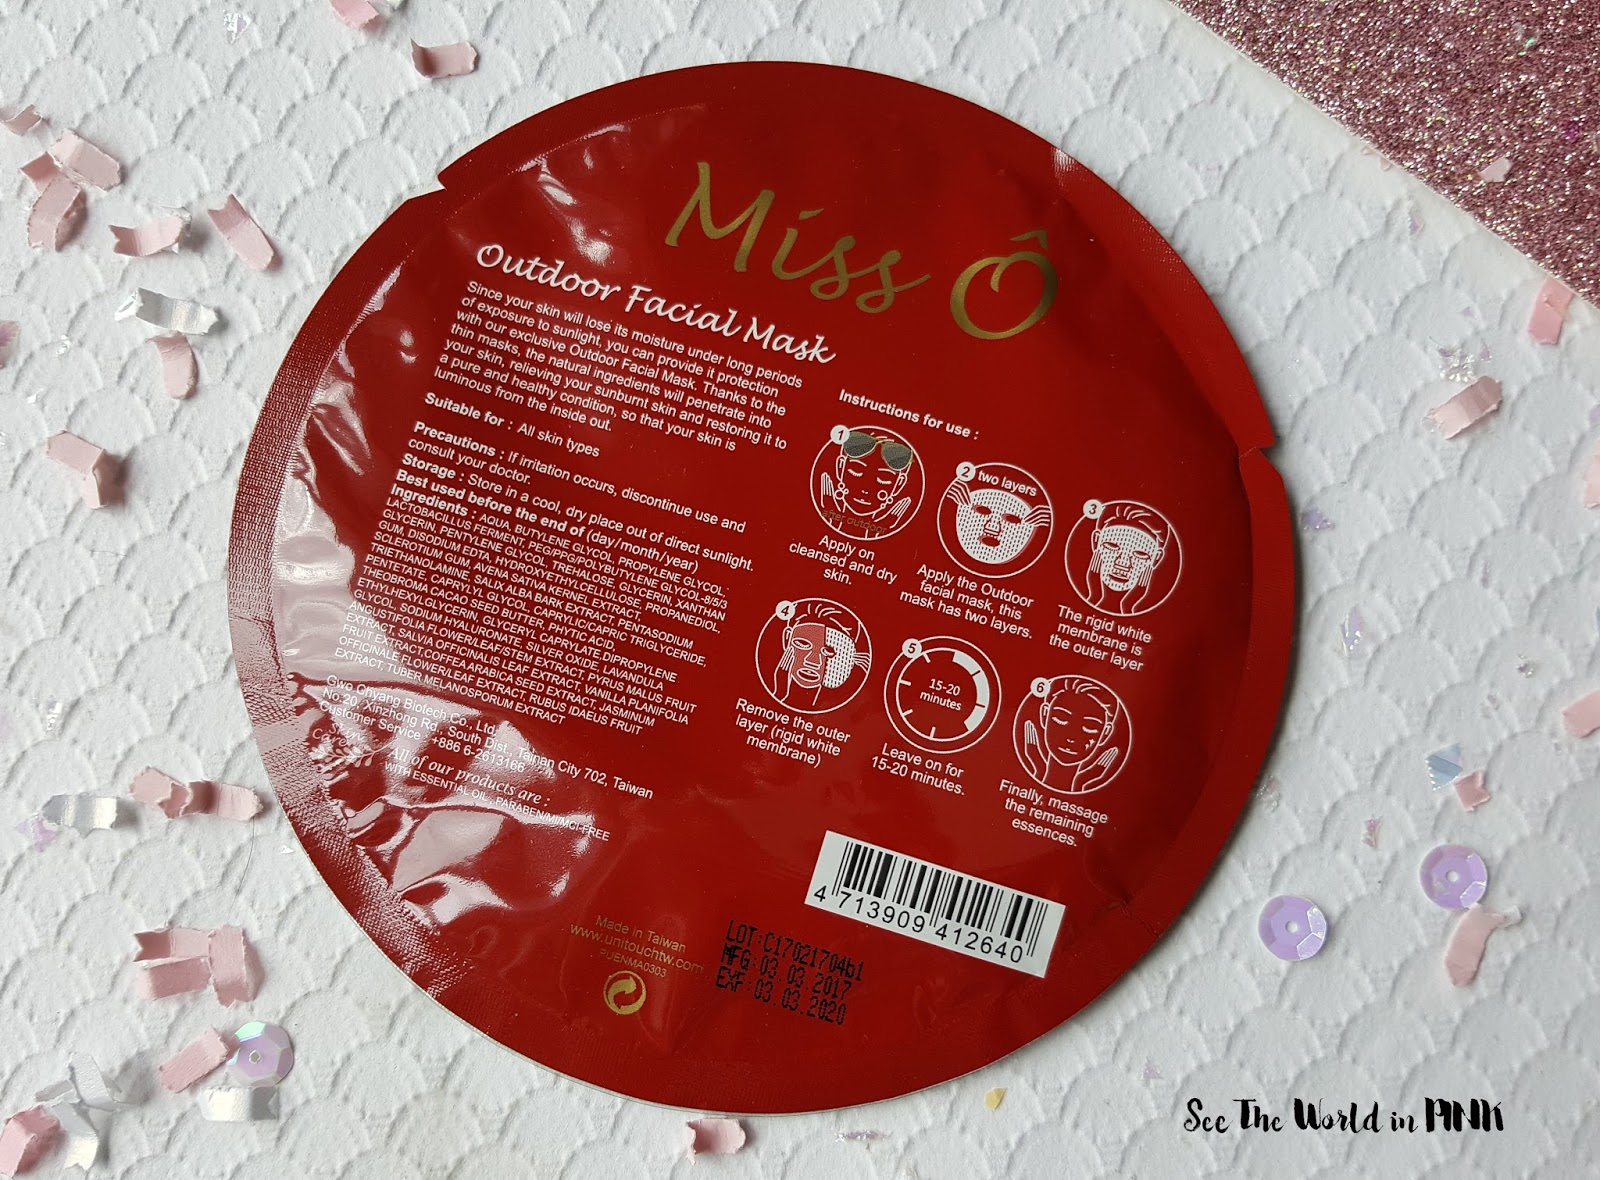 Mask Thursday - Unitouch Miss O Mask Reviews + $5 Off Coupon Code At Beautibi!